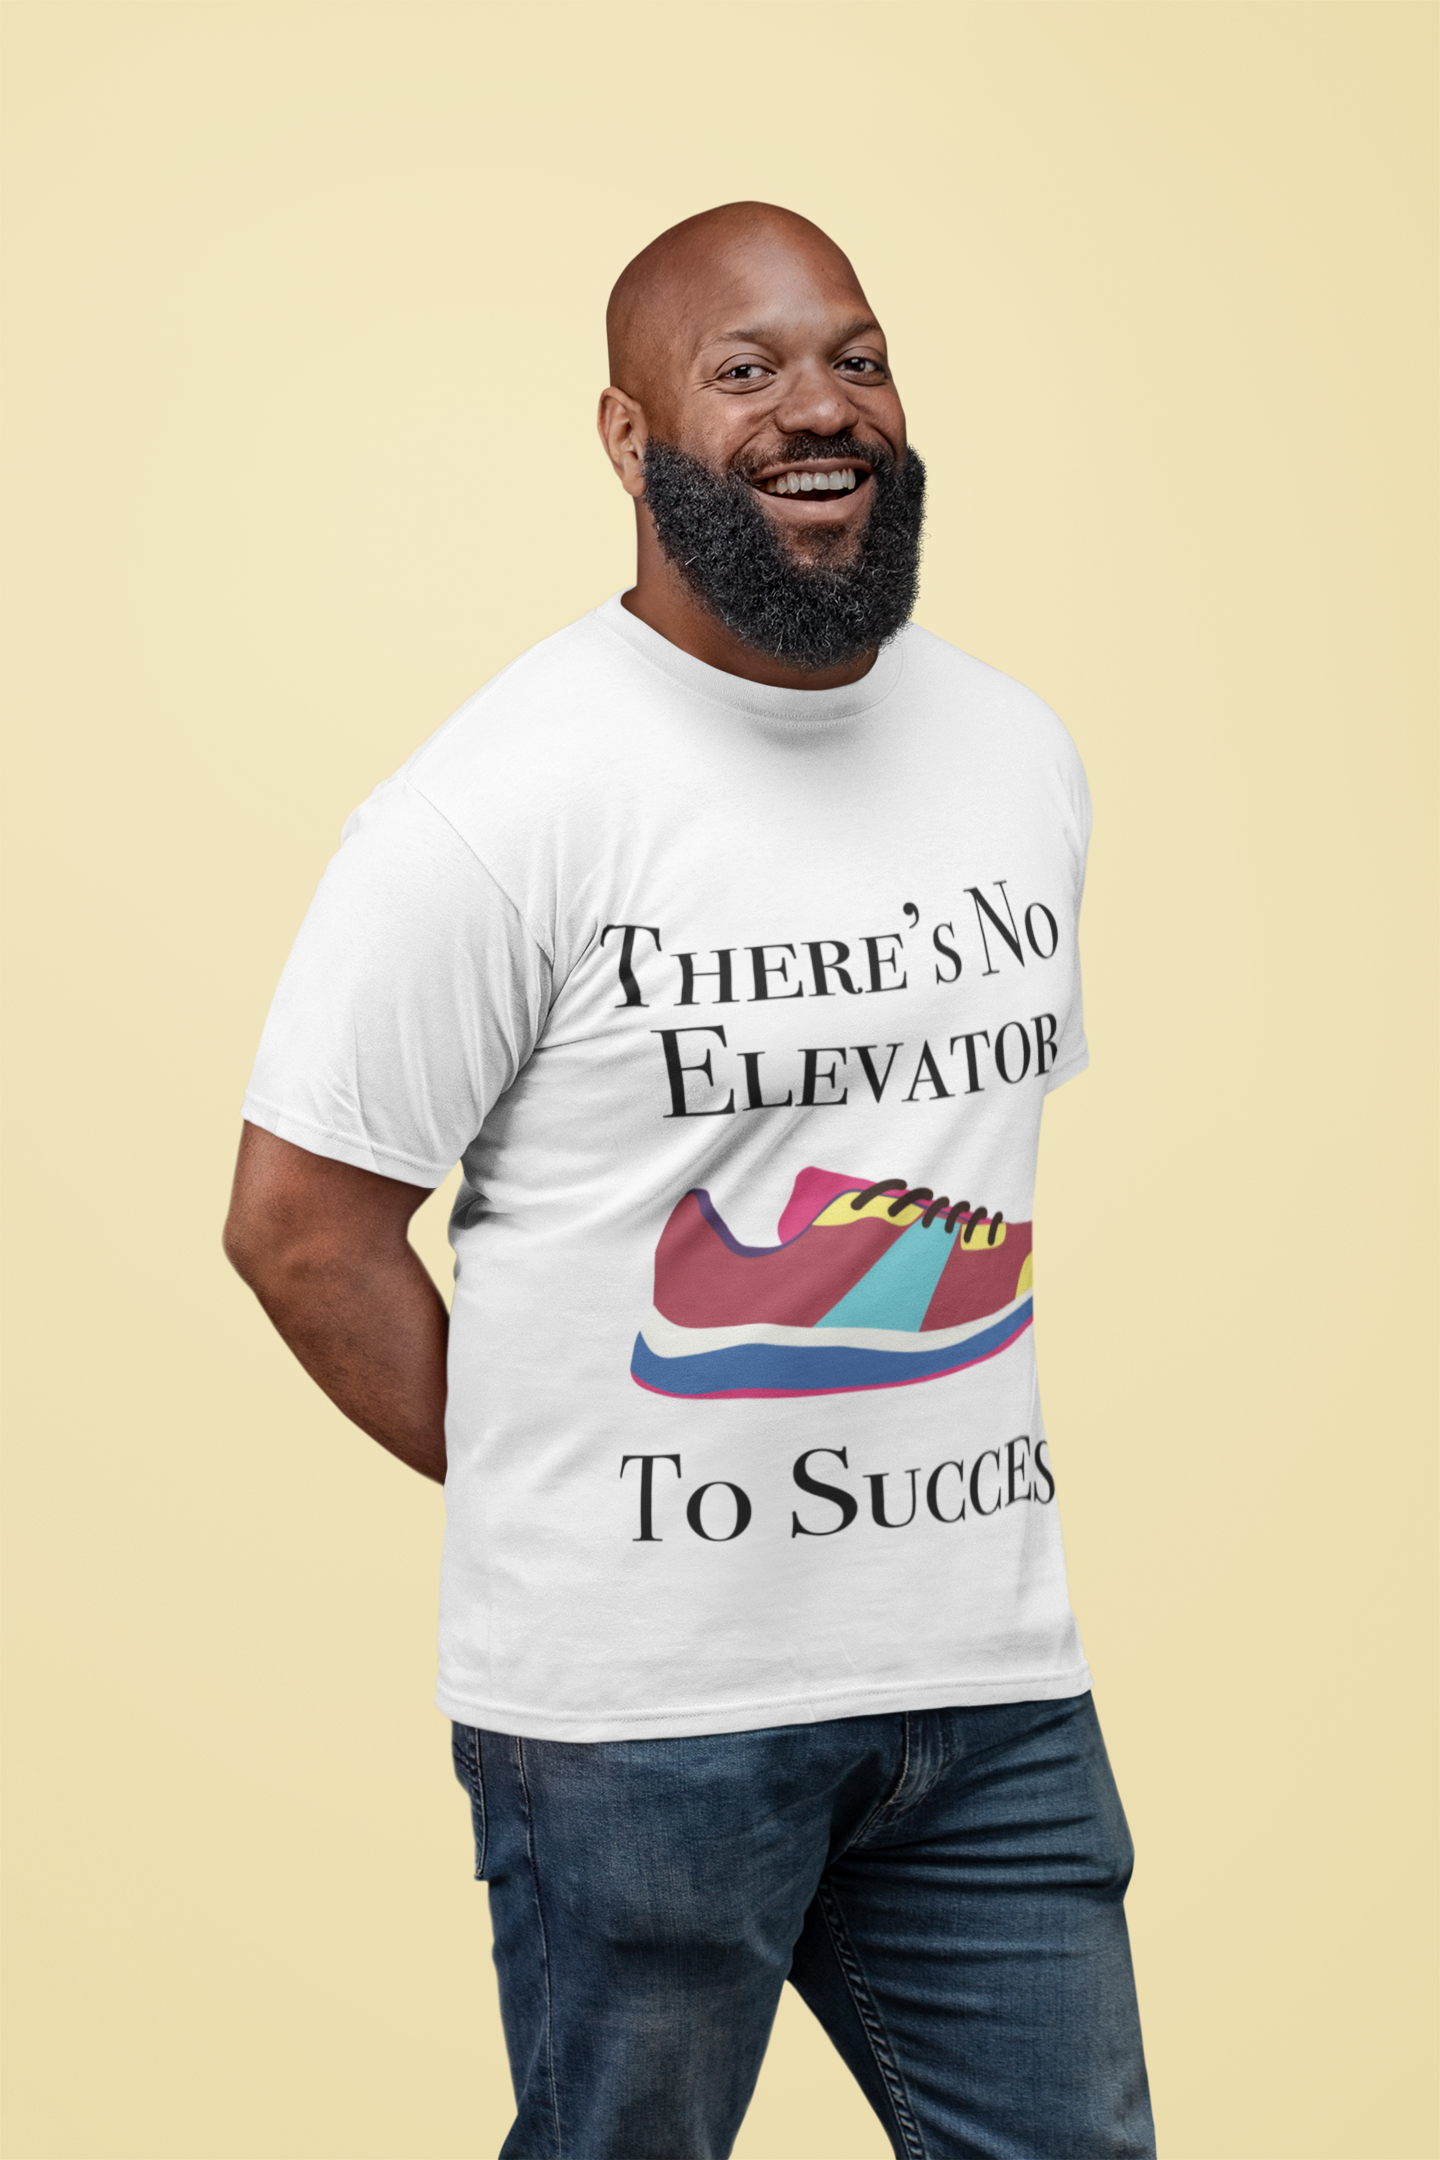 mockup-of-a-smiling-man-with-a-big-beard-wearing-a-t-shirt-21523